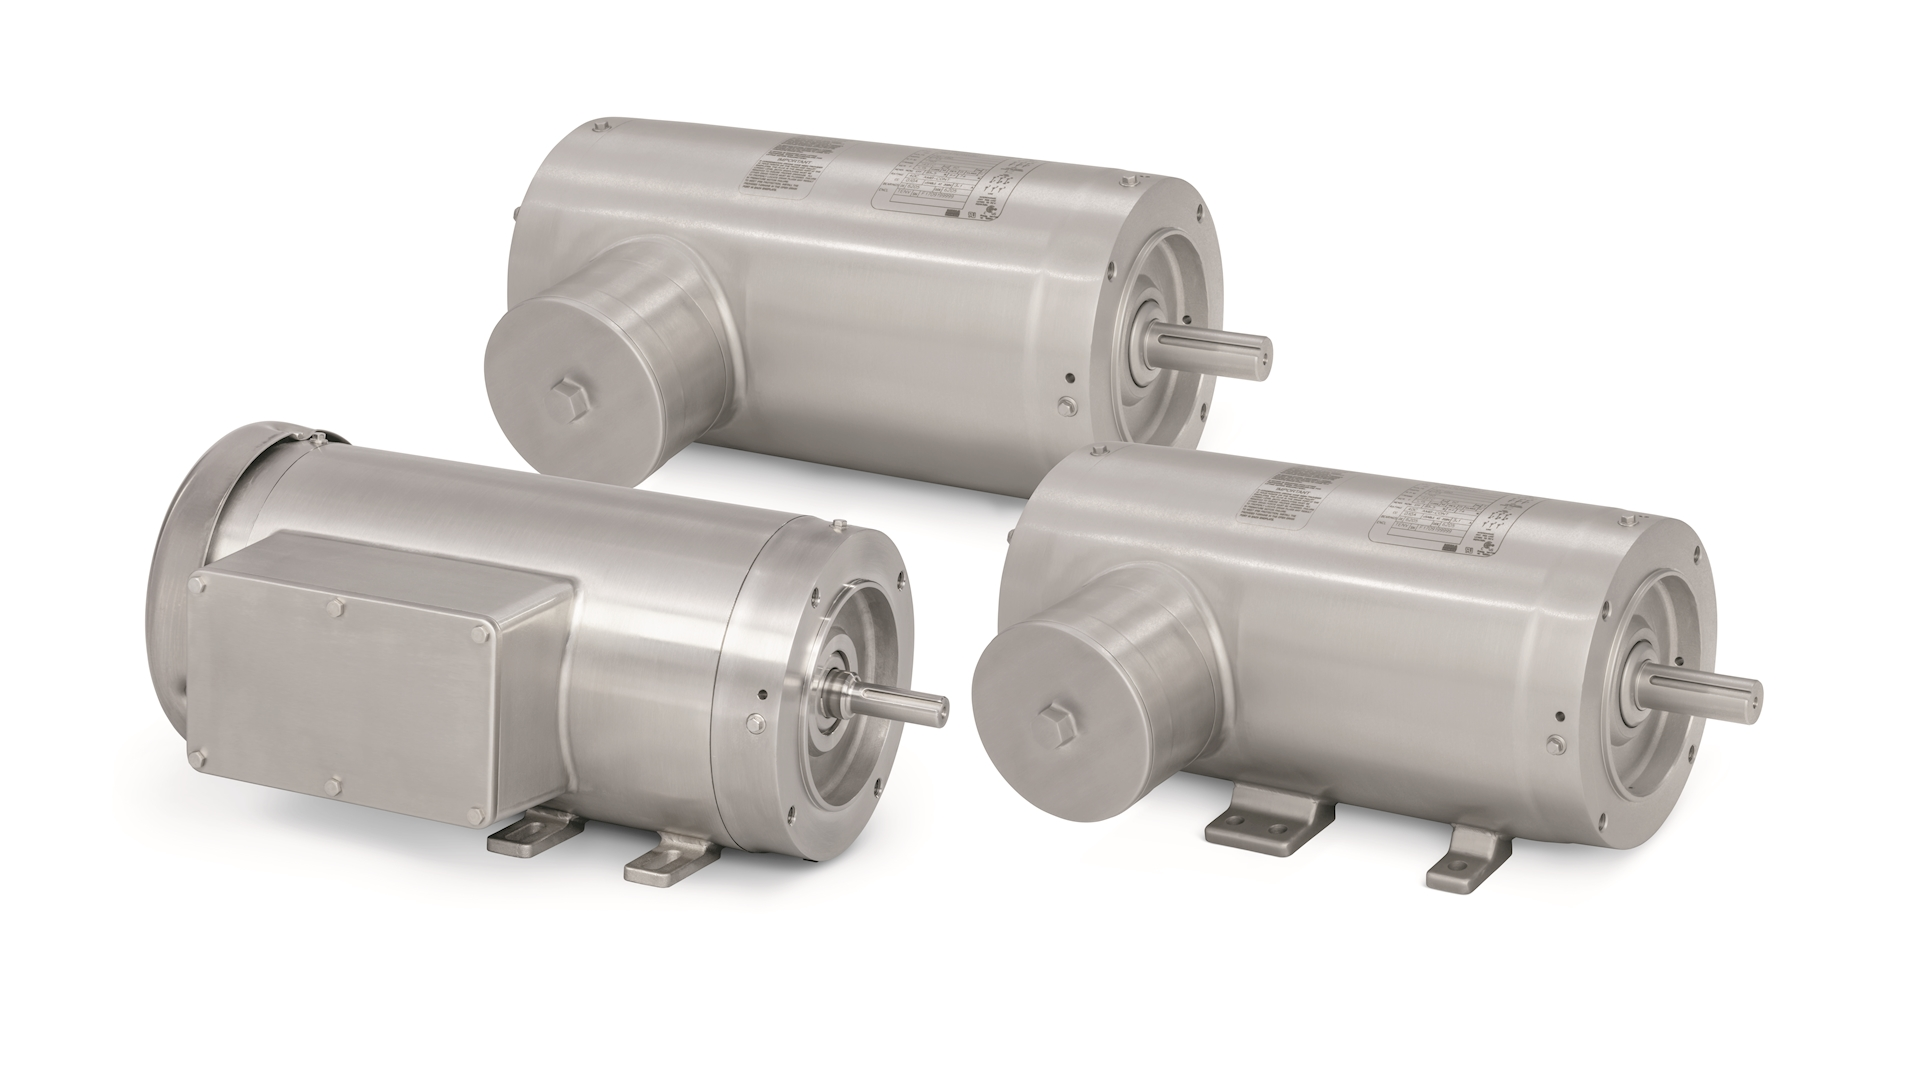 ABB launches Baldor-Reliance® food safe stainless steel motors